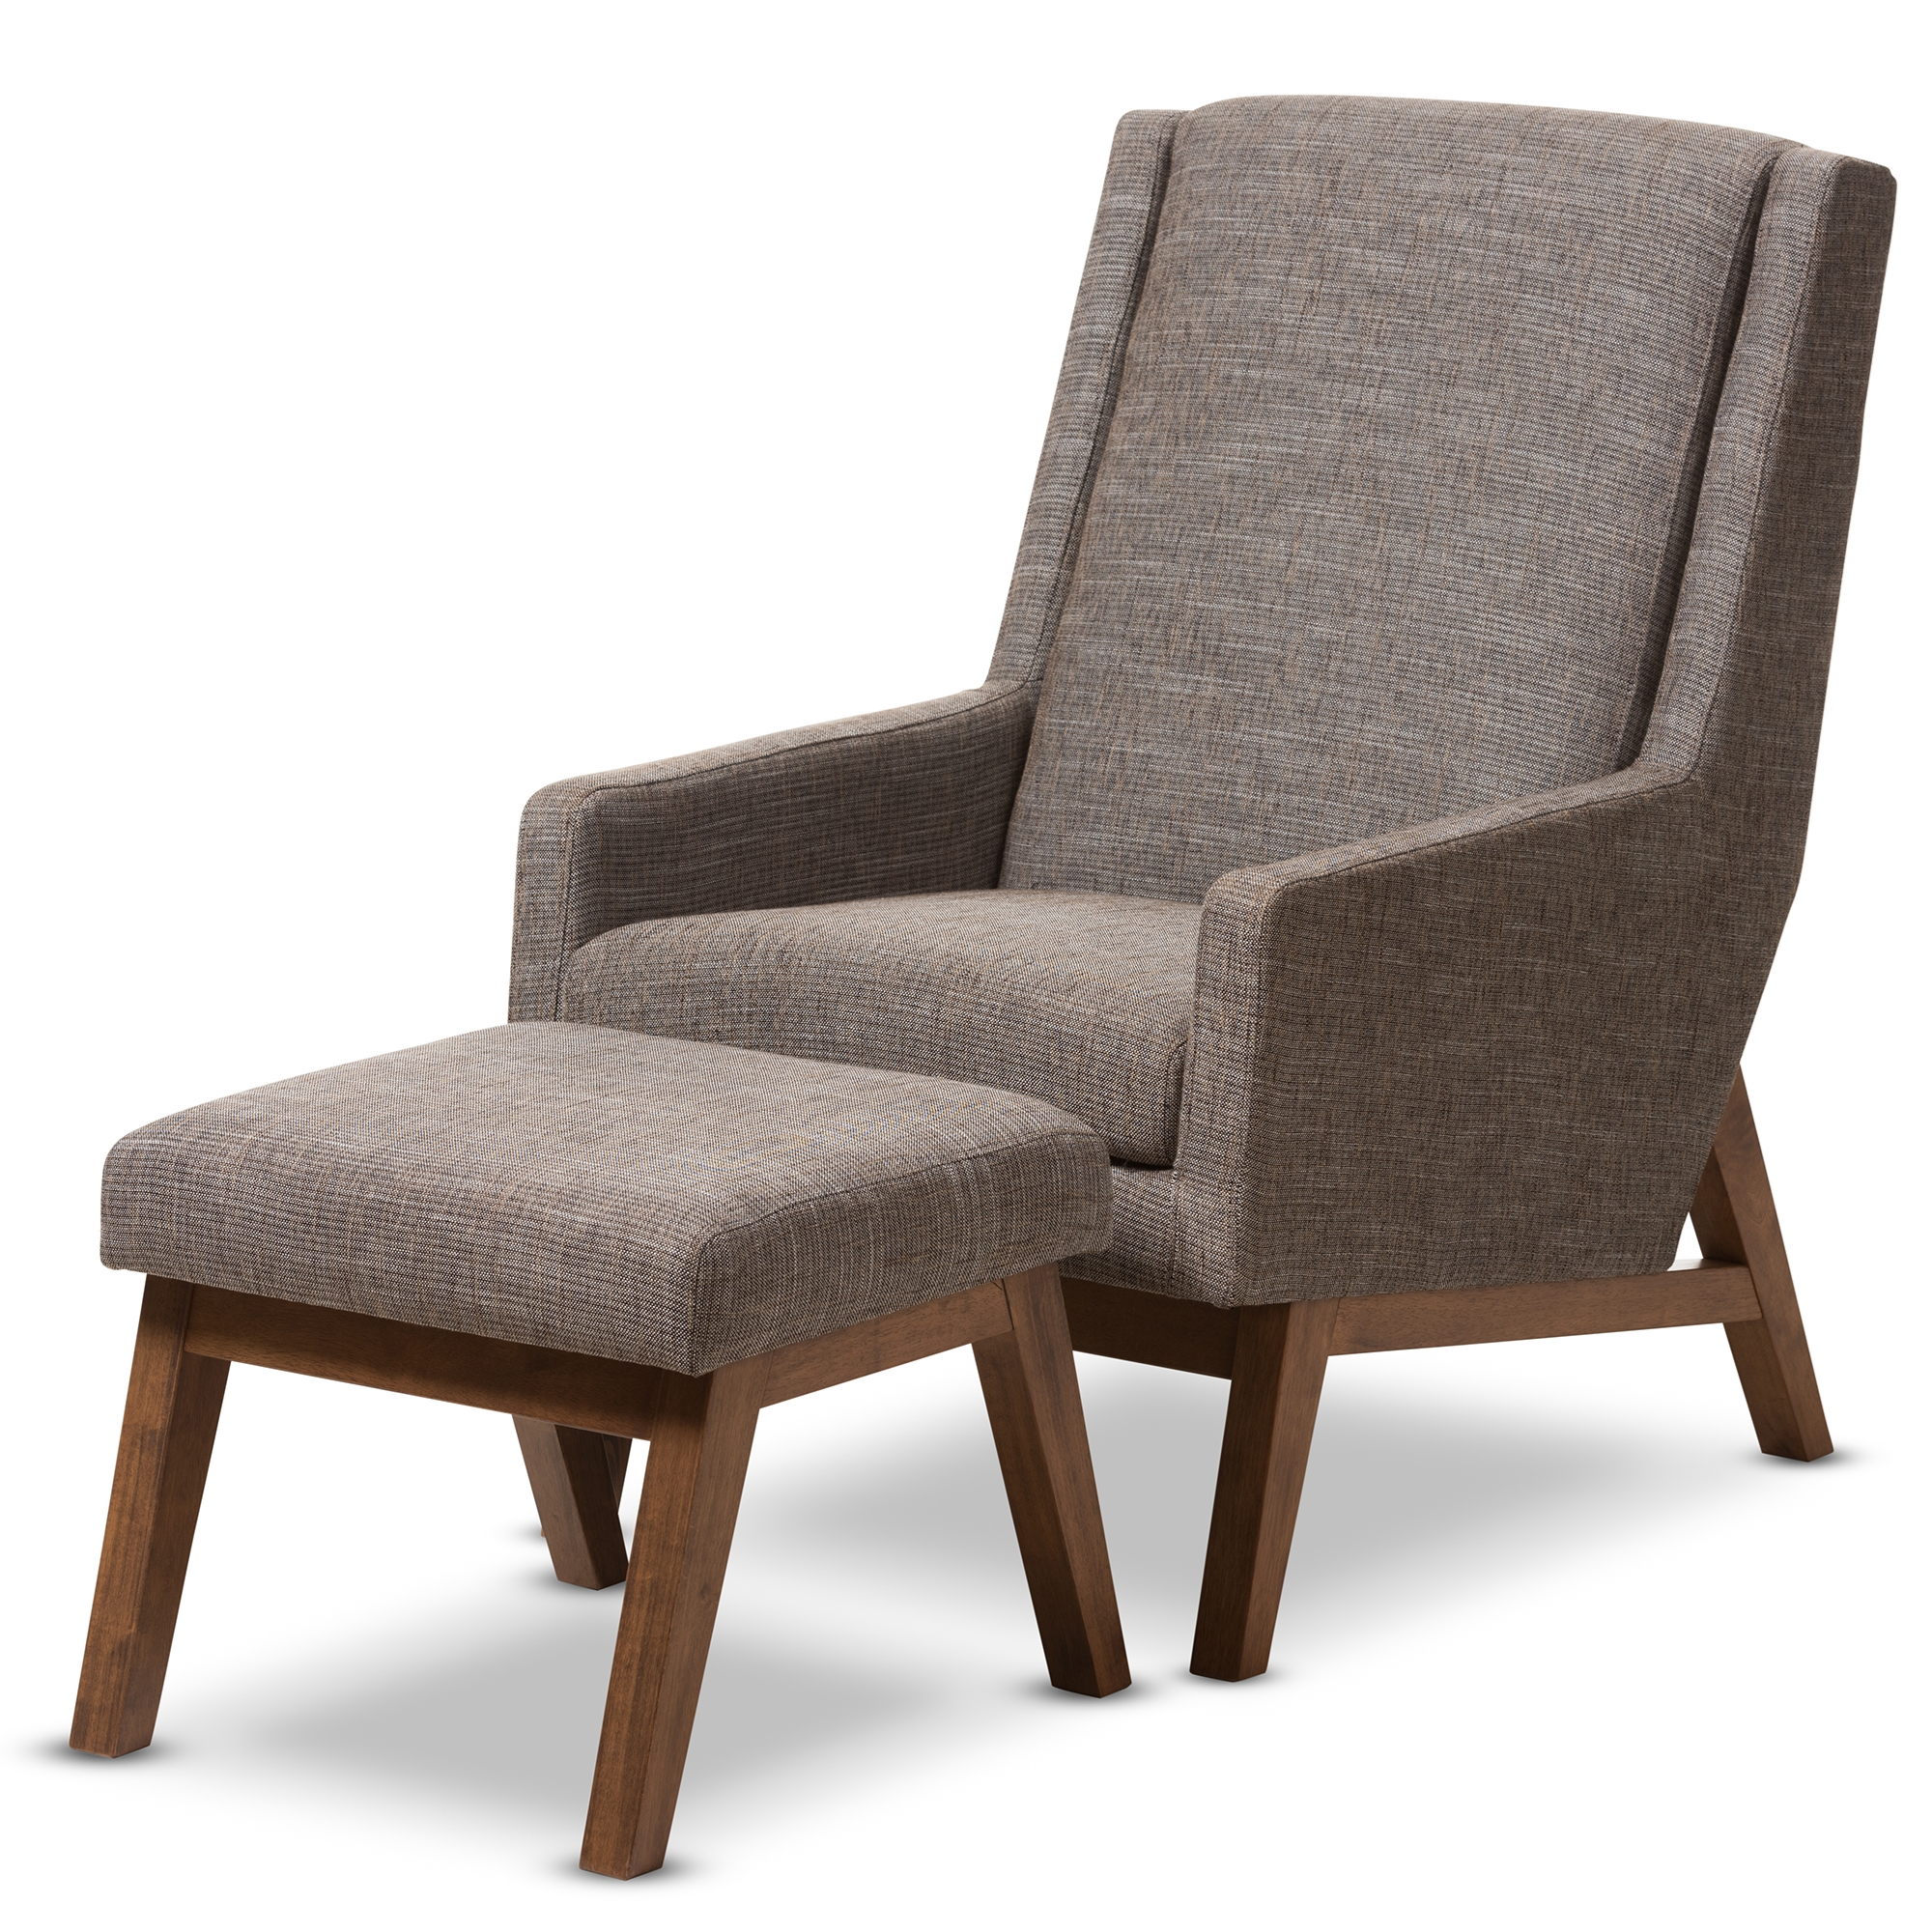 Baxton Studio Aberdeen Mid Century Modern Walnut Wood Finishing And Gravel  Fabric Upholstered Lounge Chair And Ottoman Set